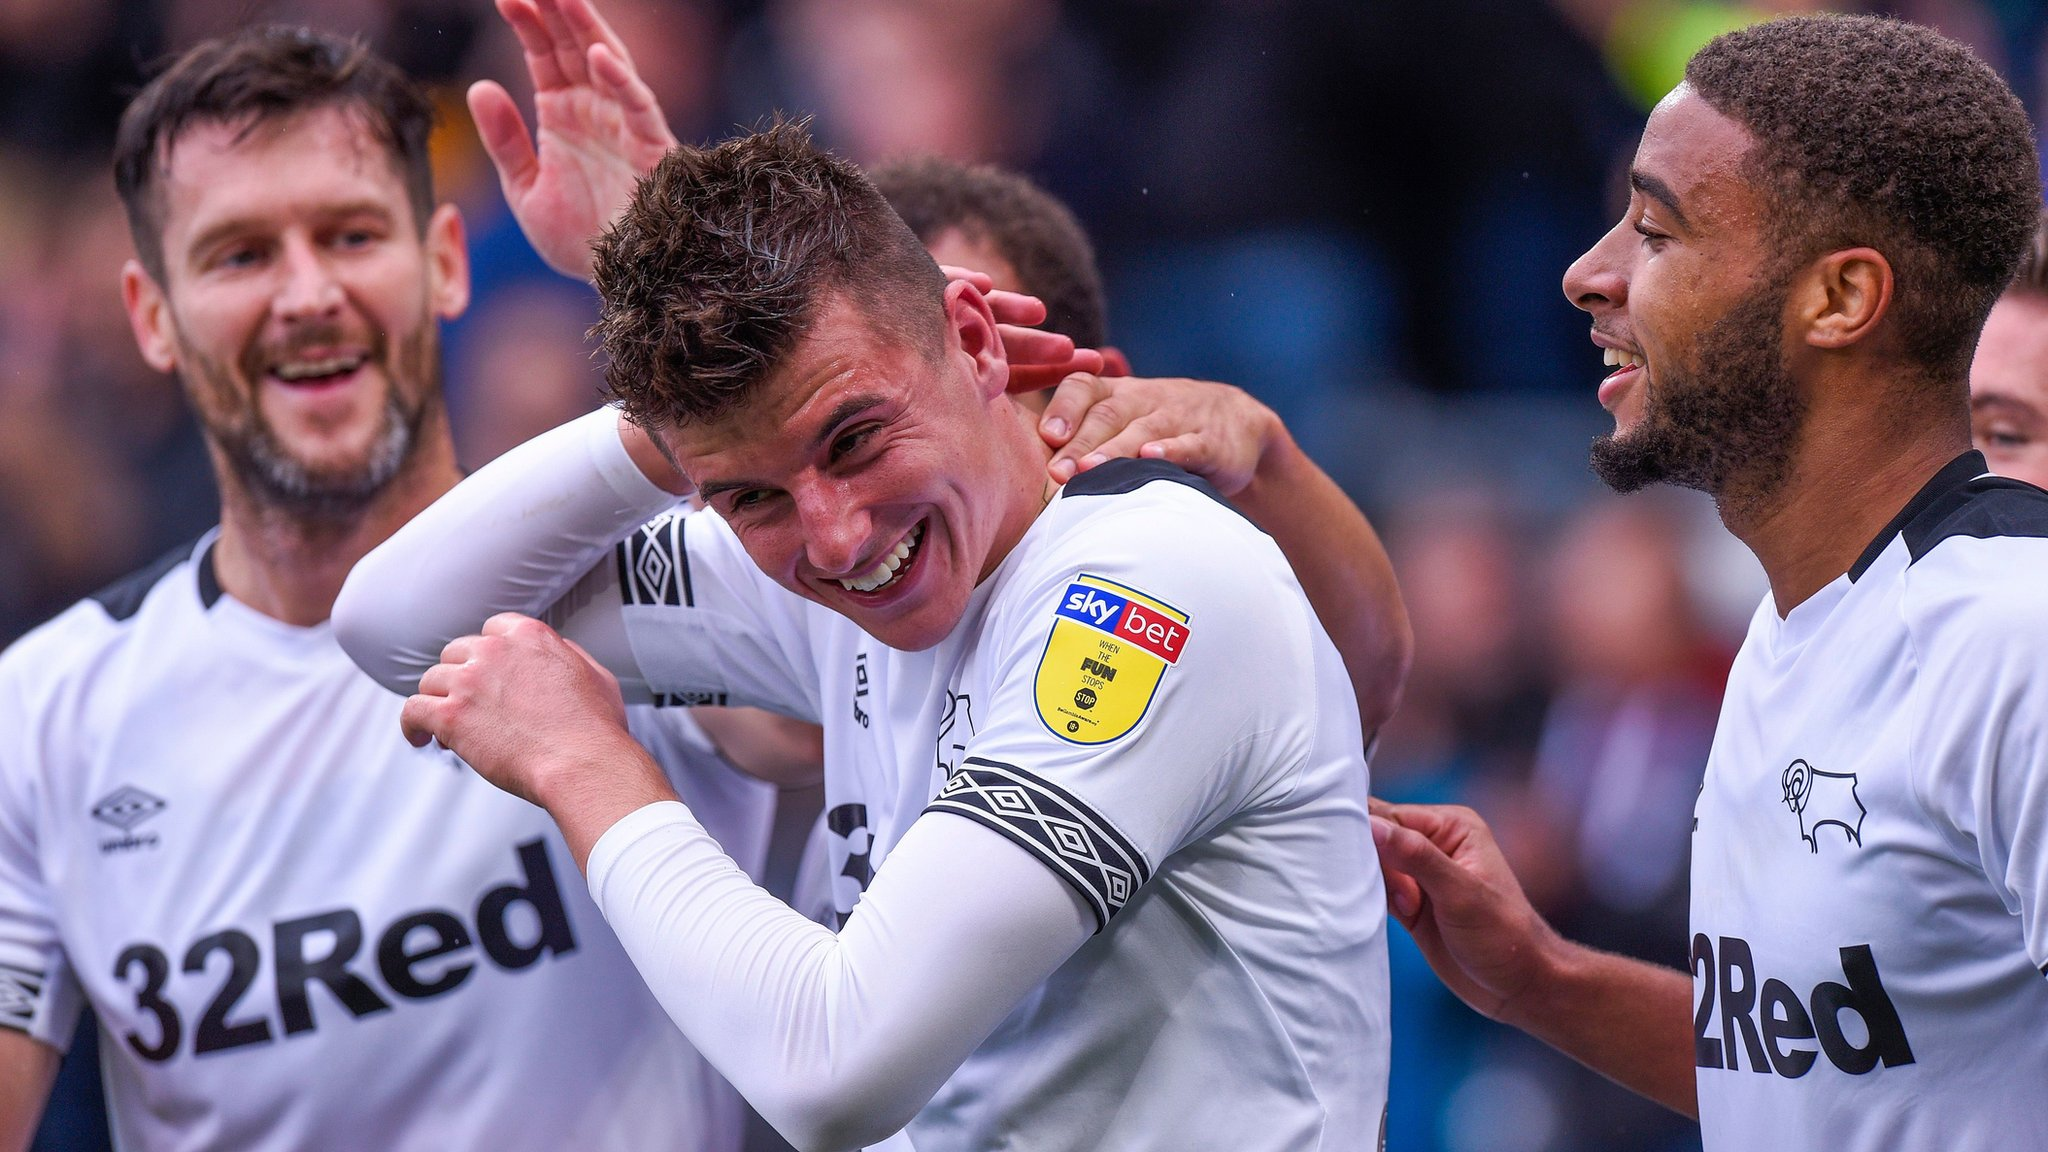 Derby County 3-1 Brentford: Rams come from behind to end Brentford's unbeaten run